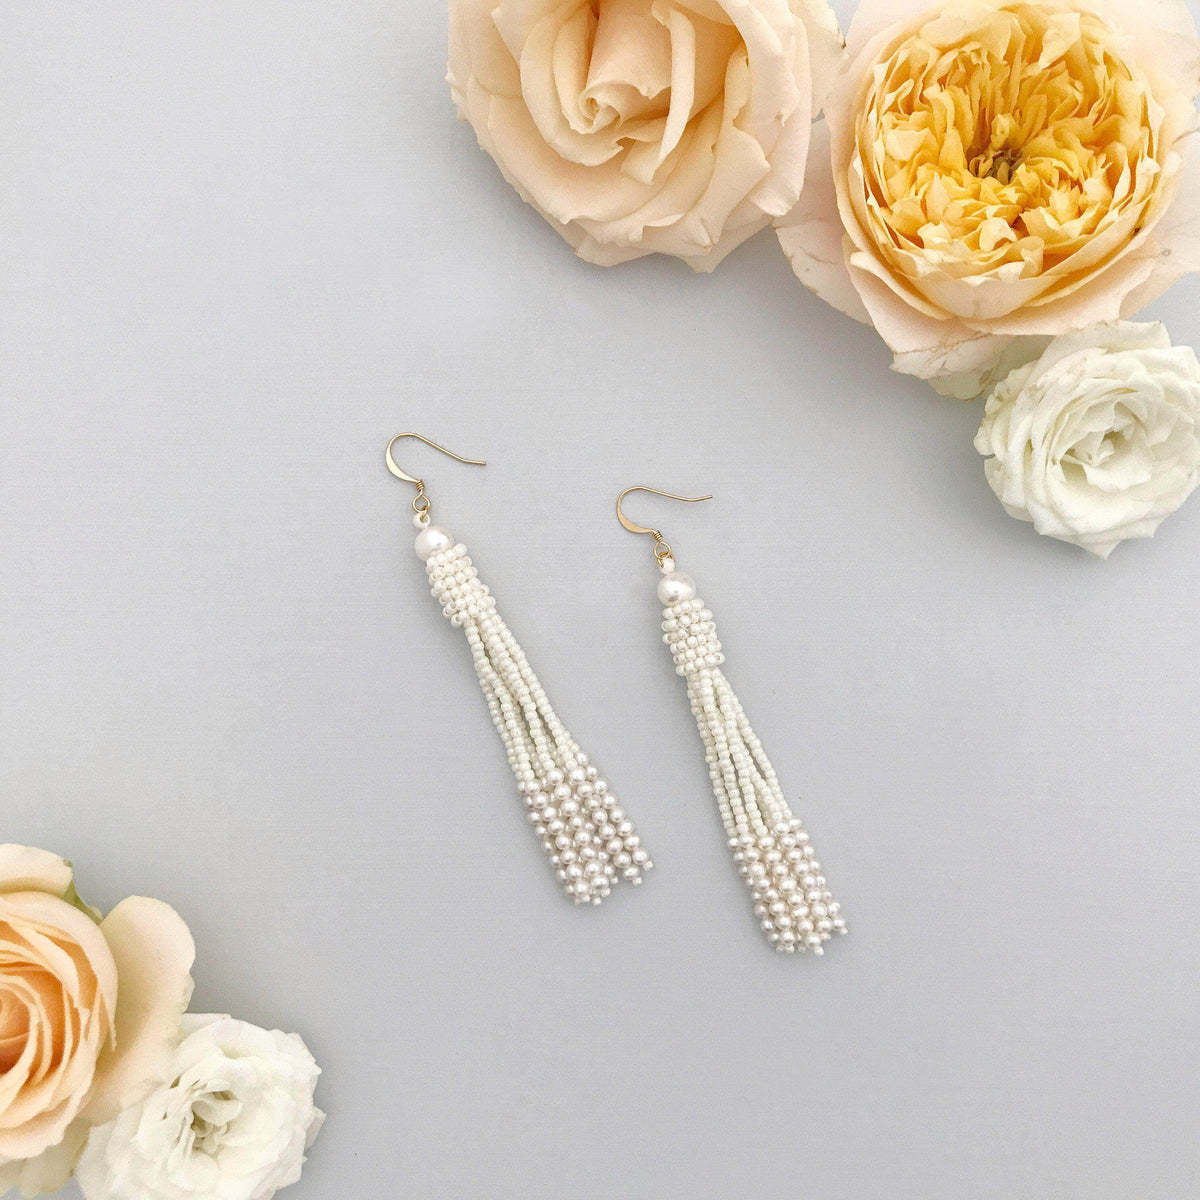 Wedding Earring Pearl Pearl wedding tassel earrings - 'Pearl'